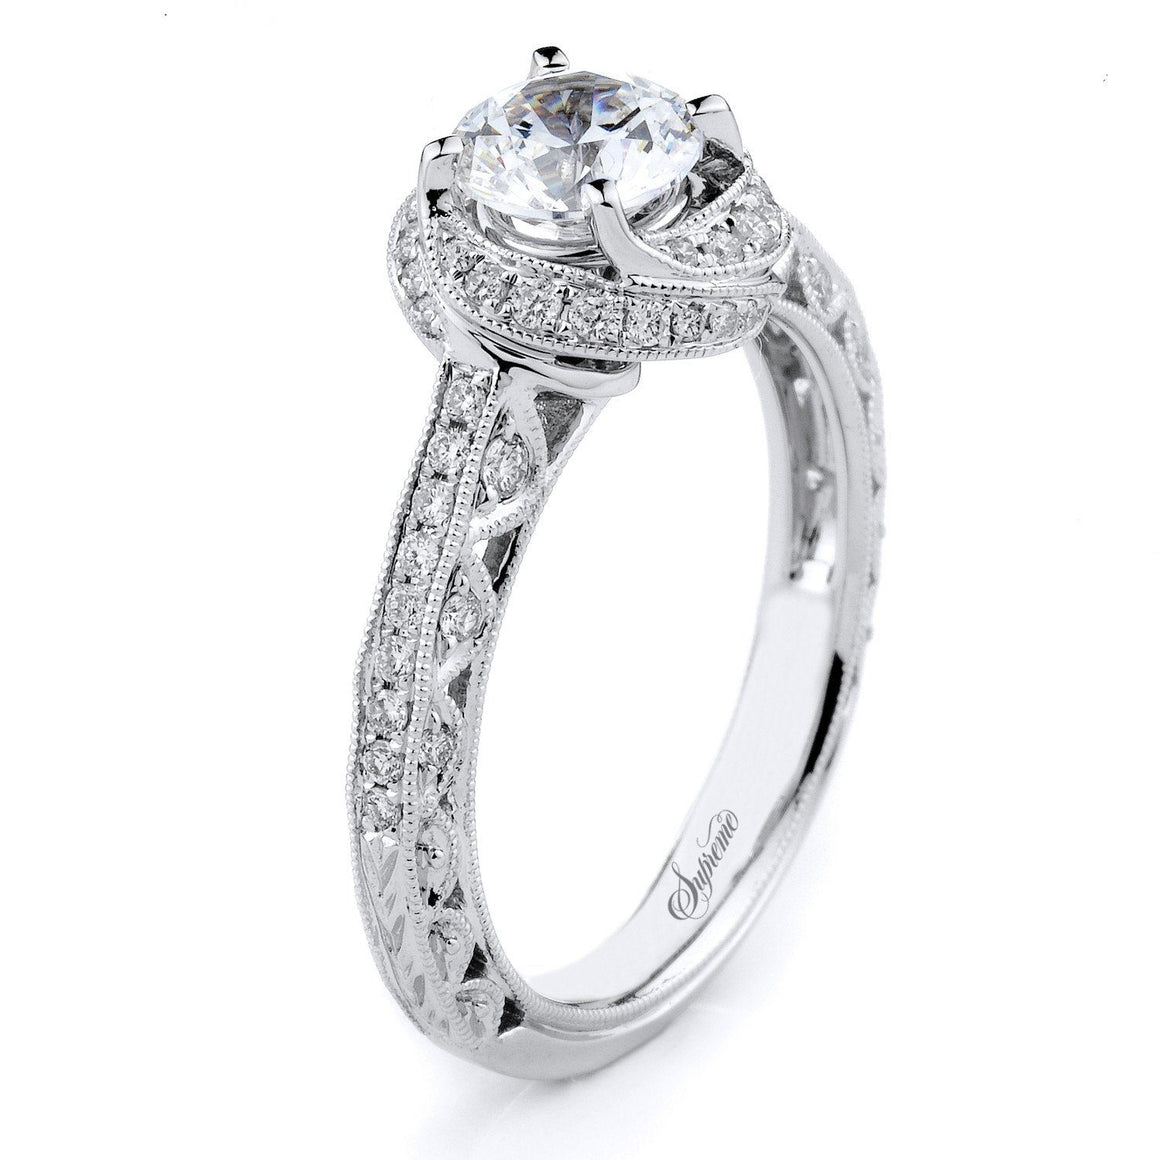 Supreme - SJU1527RS, Engagement Ring, Supreme Jewelry - Birmingham Jewelry